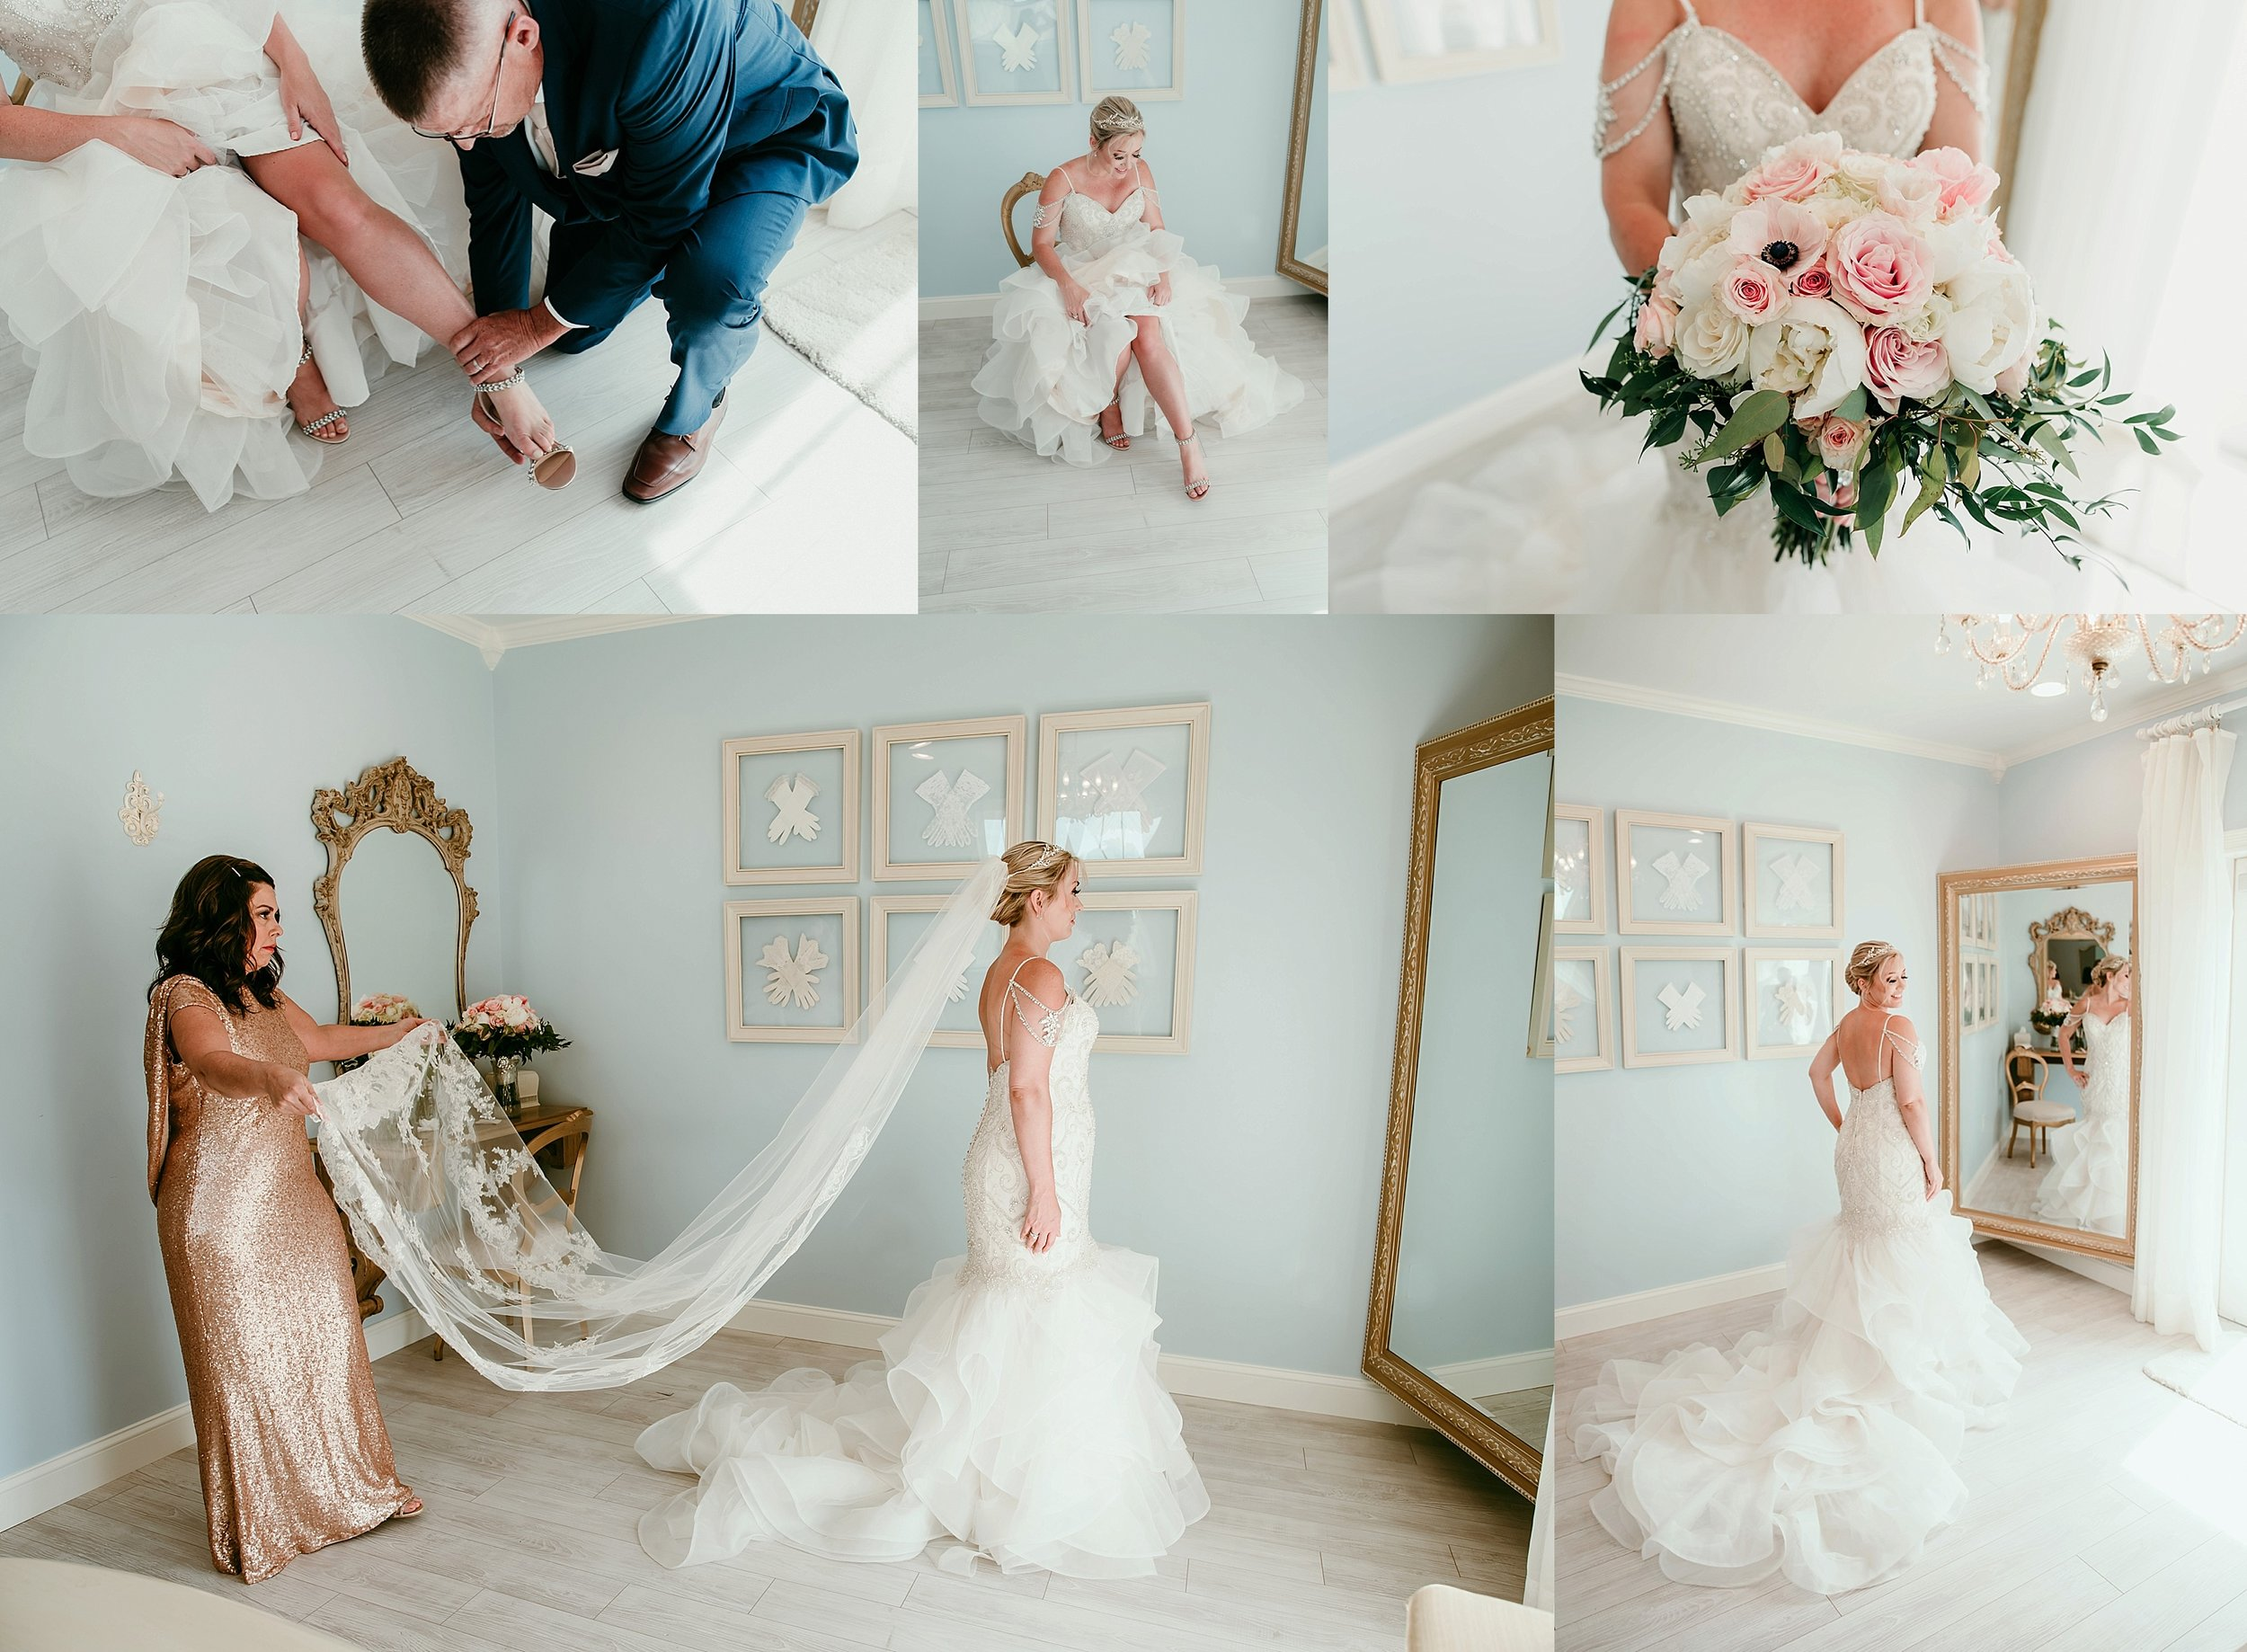 Let's take a second to appreciate this gorgeous dress and veil from my personal favorite bridal boutique:  Exclusively You